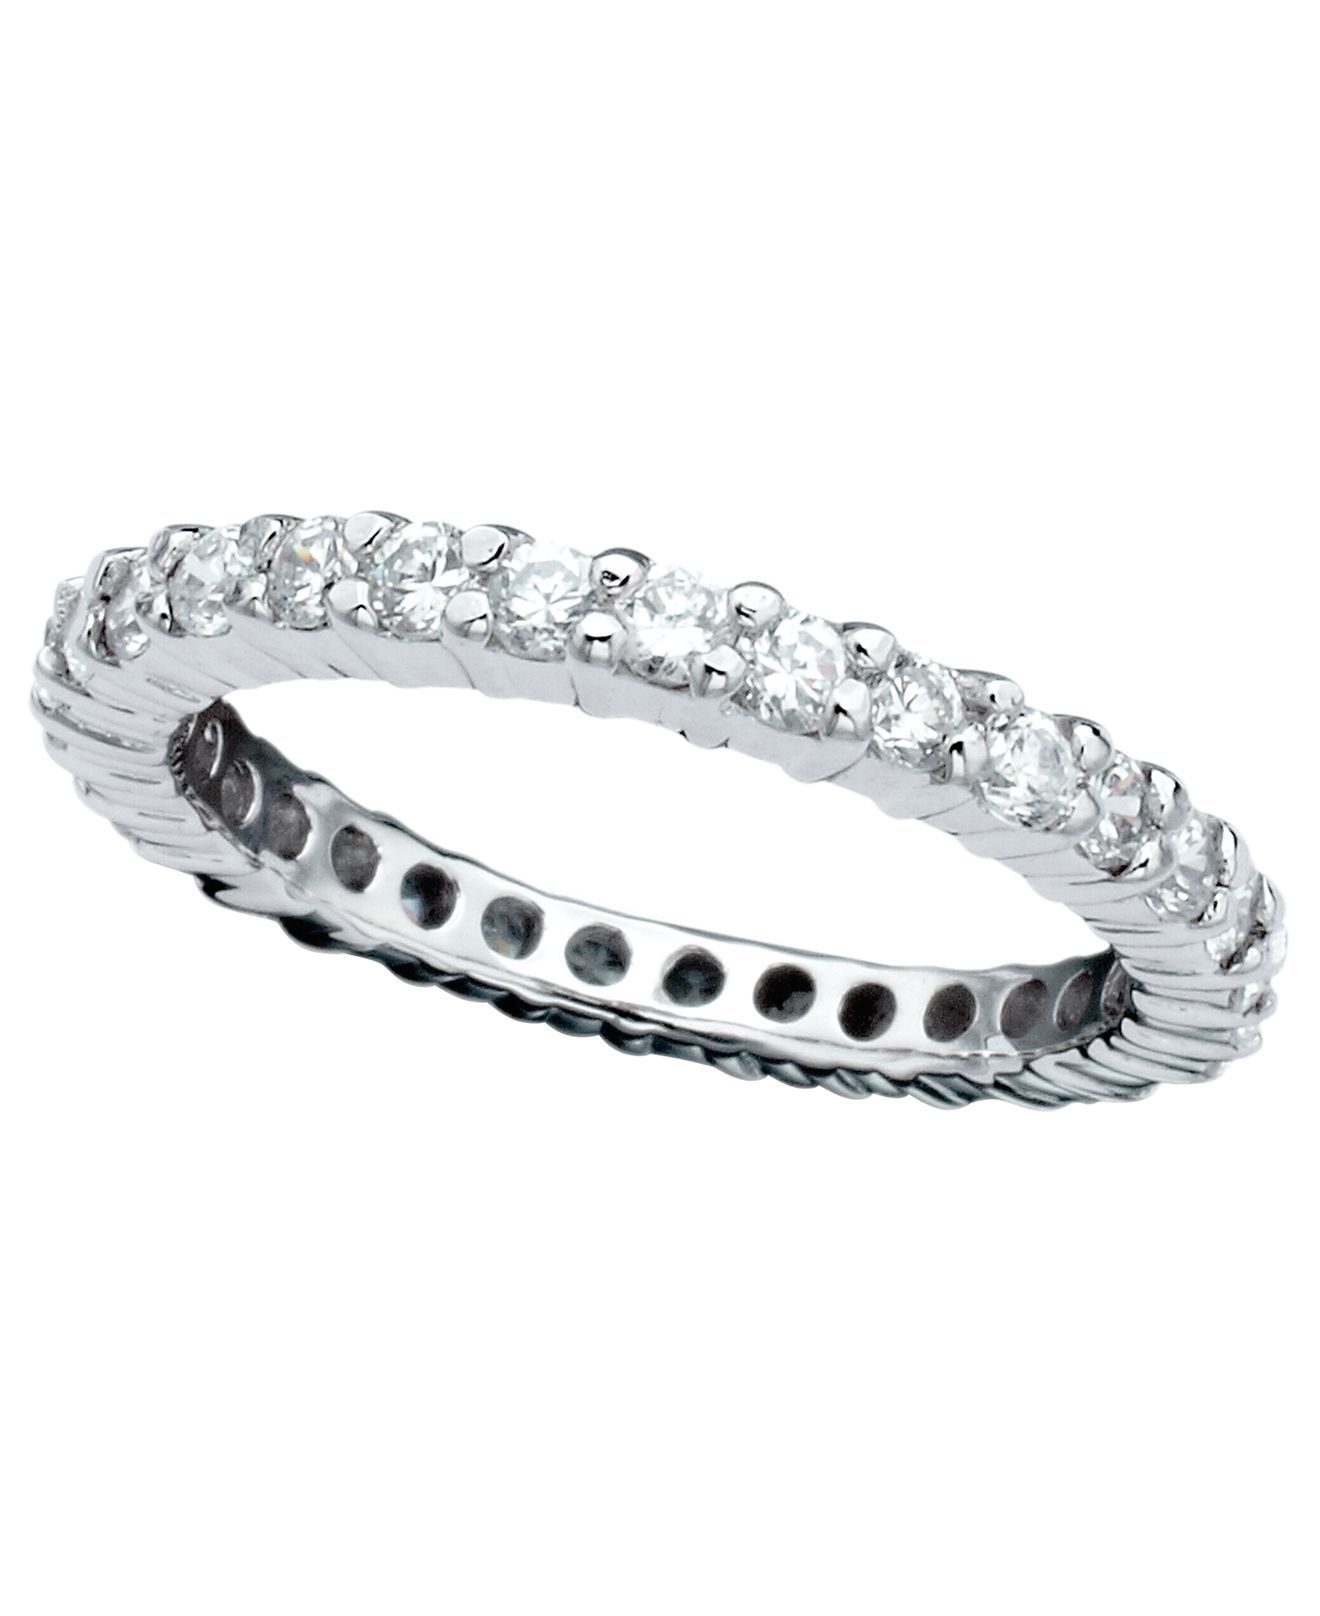 round cubic bands classic cz over band and beach palm sterling zirconia eternity platinum jewelry pin silver palmbeach baguette tapered